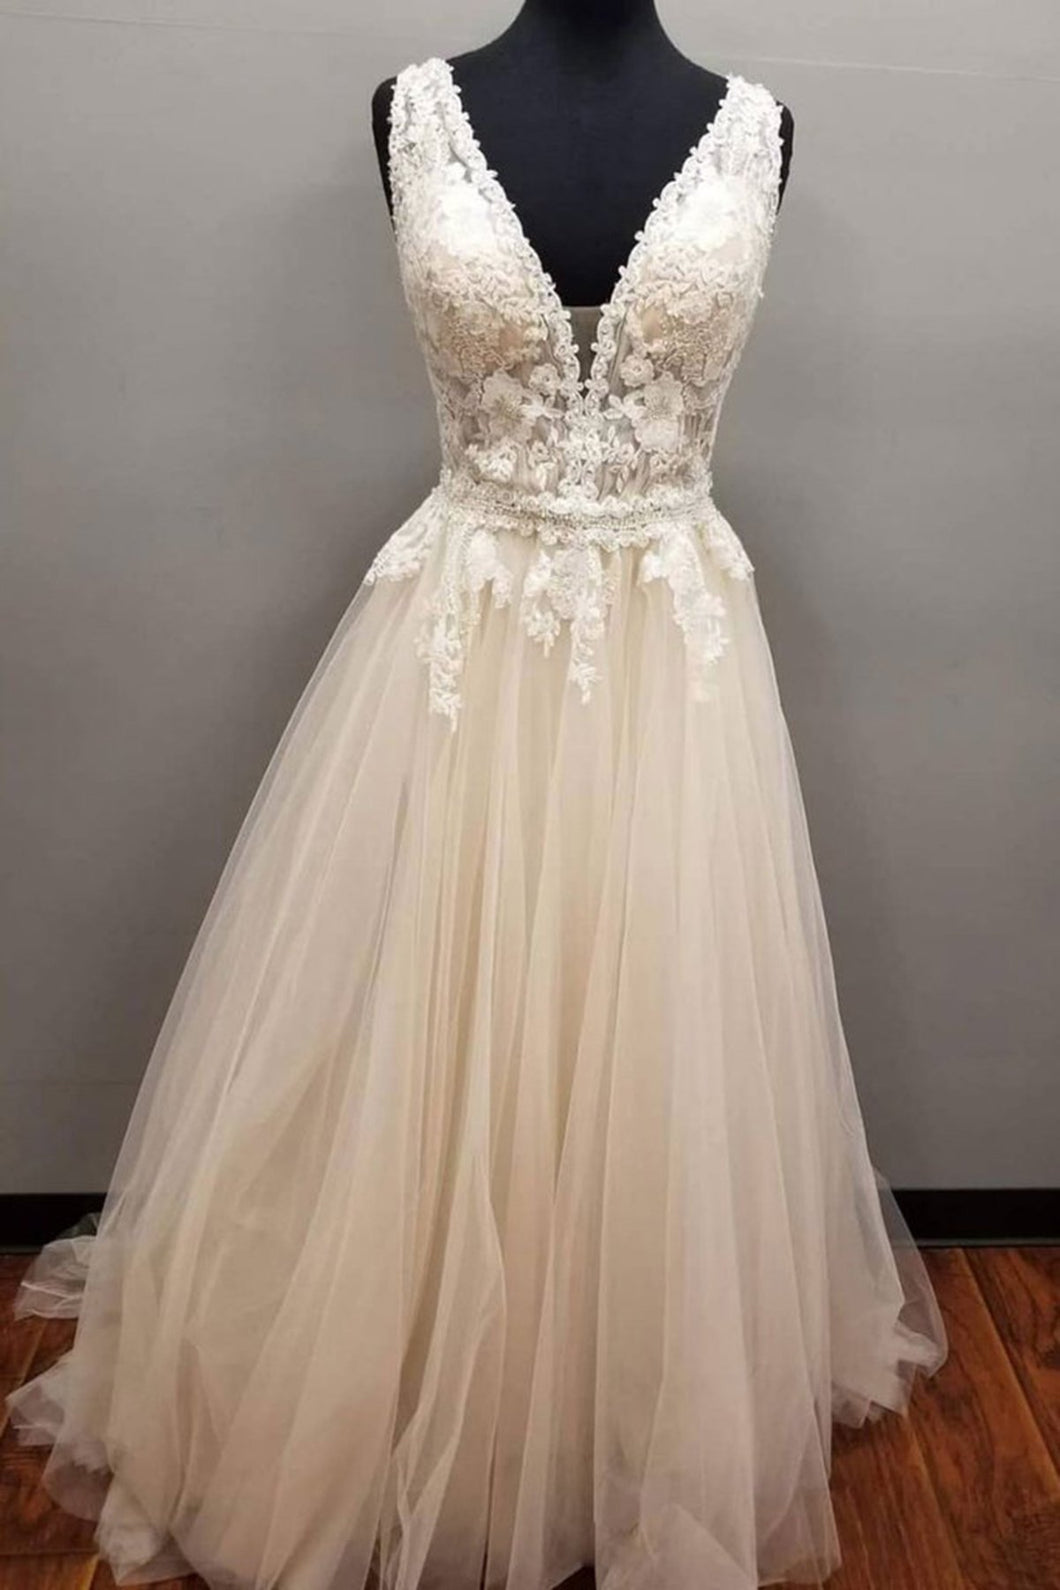 2019 Prom Dresses | Creamy Tulle V Neck Long Lace Pearl Wedding Dress, Formal Prom Dress